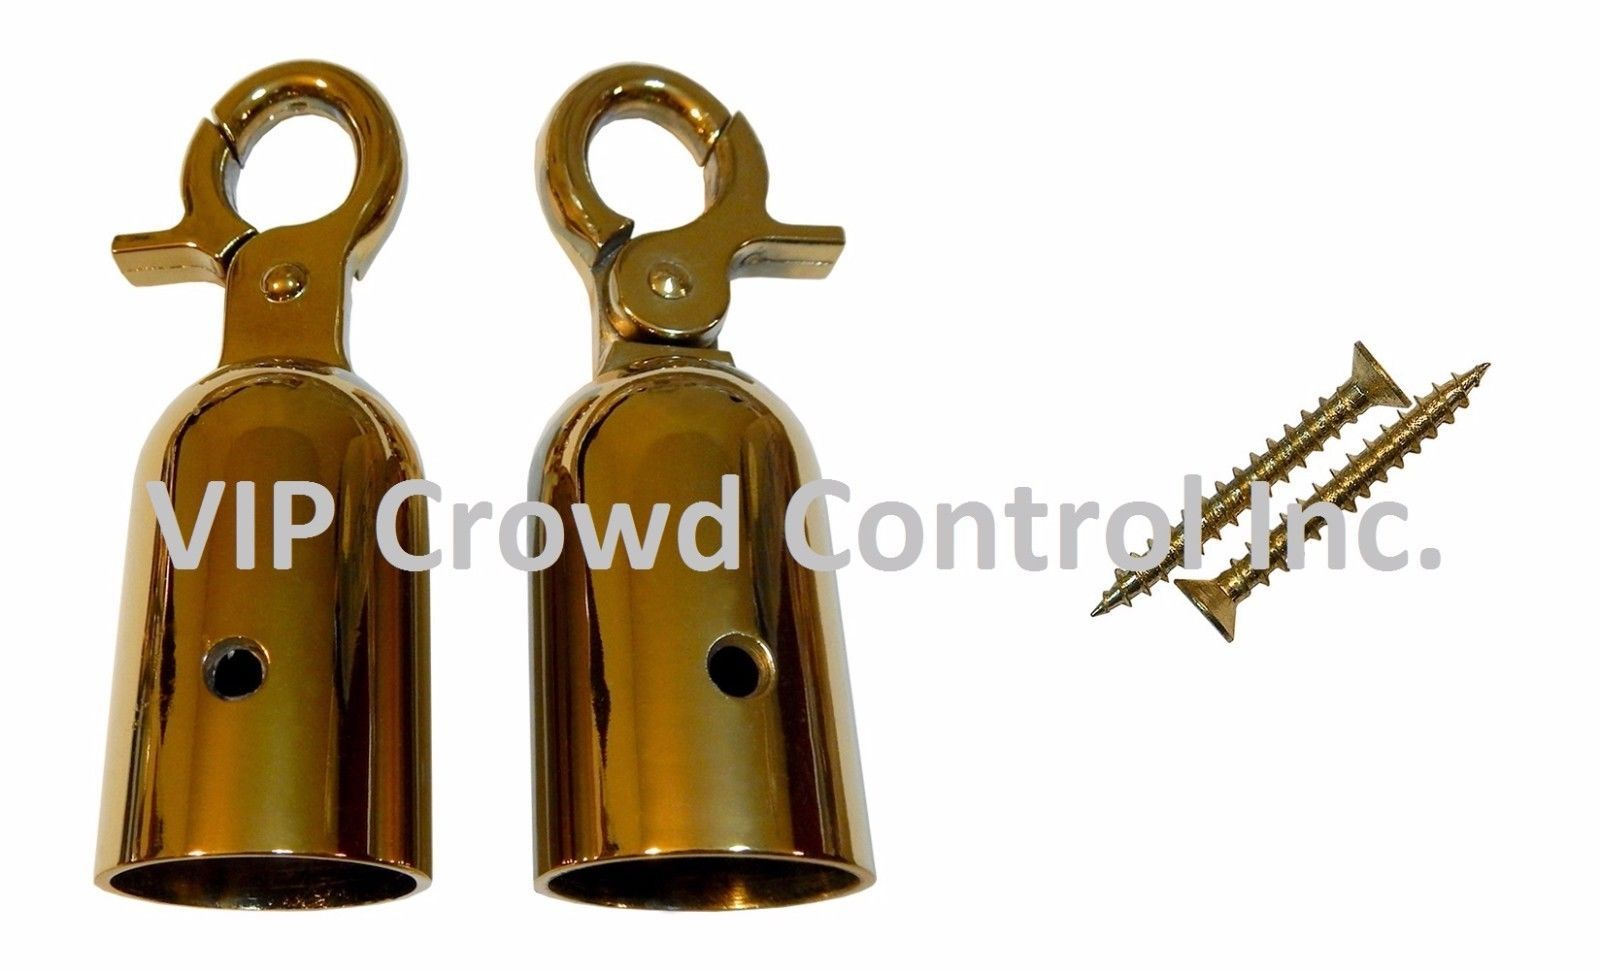 REPLACEMENT ROPE HOOK, 2 PCS SET IN GOLD FINISHED, VIP CROWD CONTROL